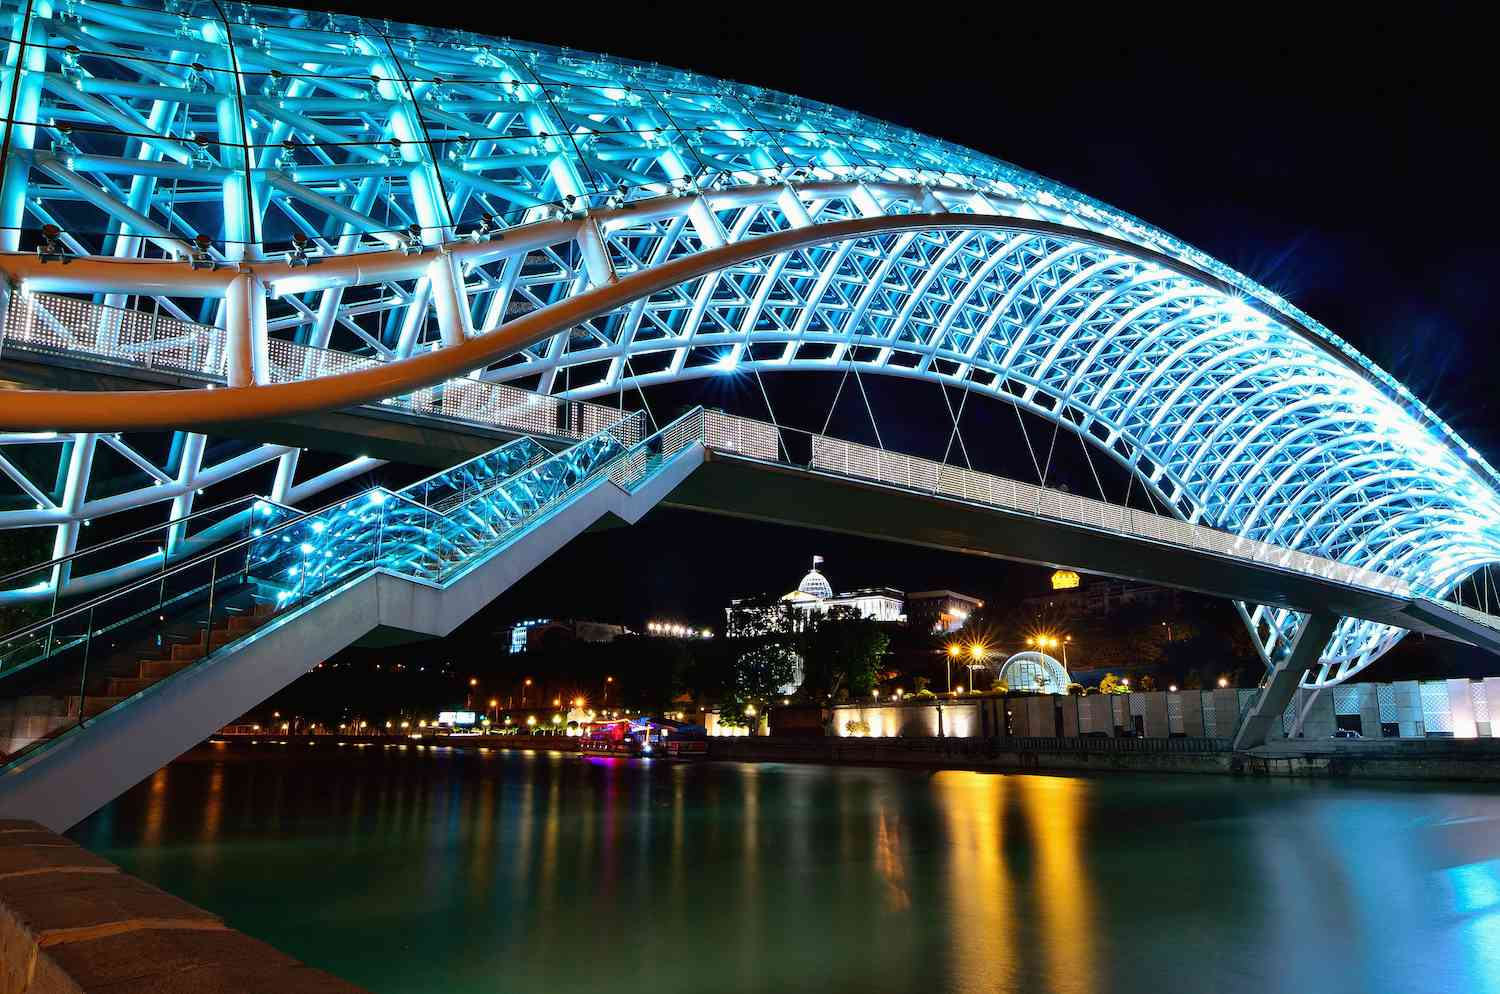 The Bridge of Peace lit up by blue LED lighting at night